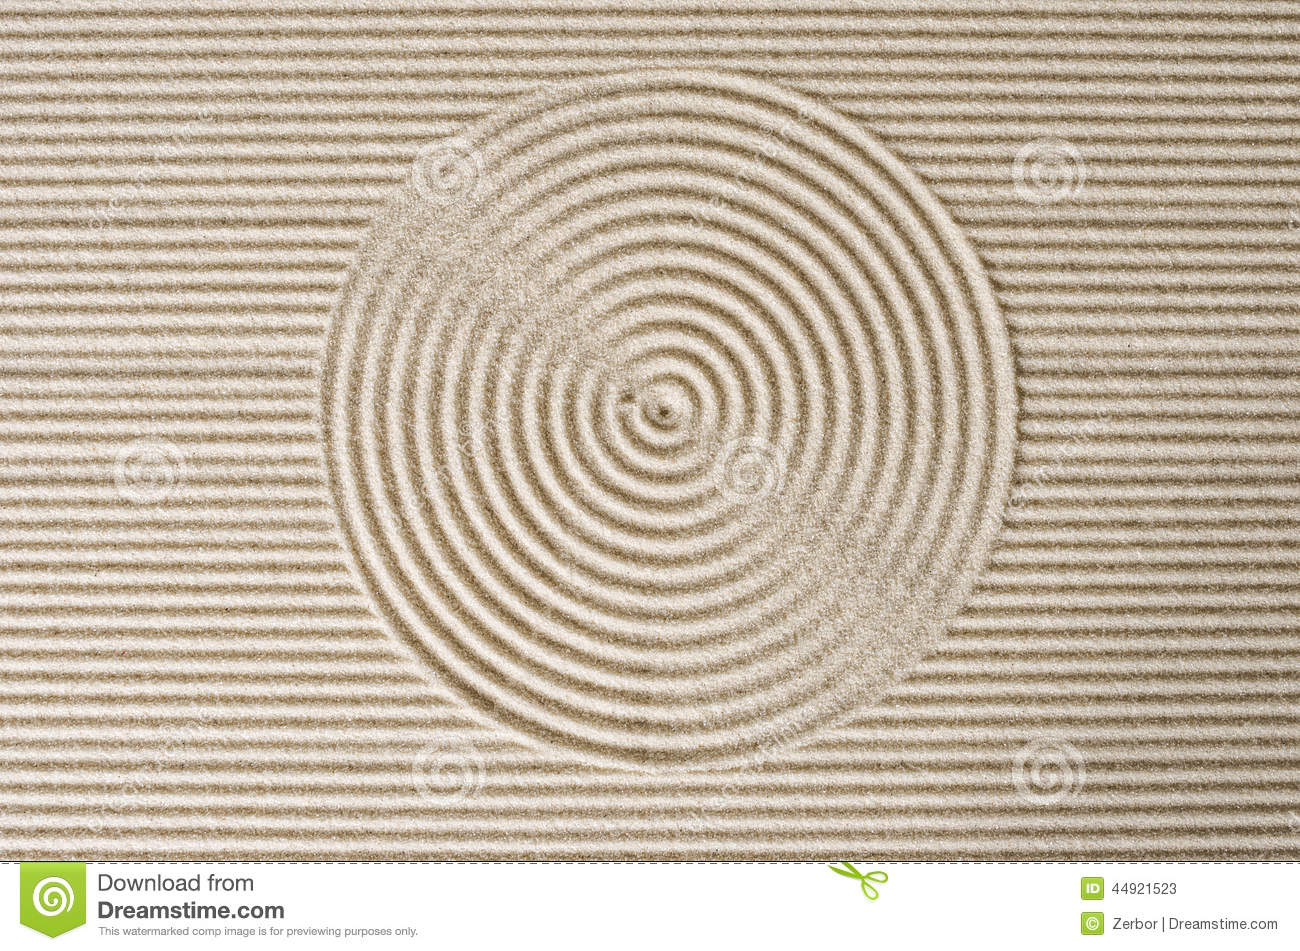 Japanese zen gardens top view - Japanese Zen Gardens Top View Japanese Zen Gardens Top View Zen Garden Stock Photo Image